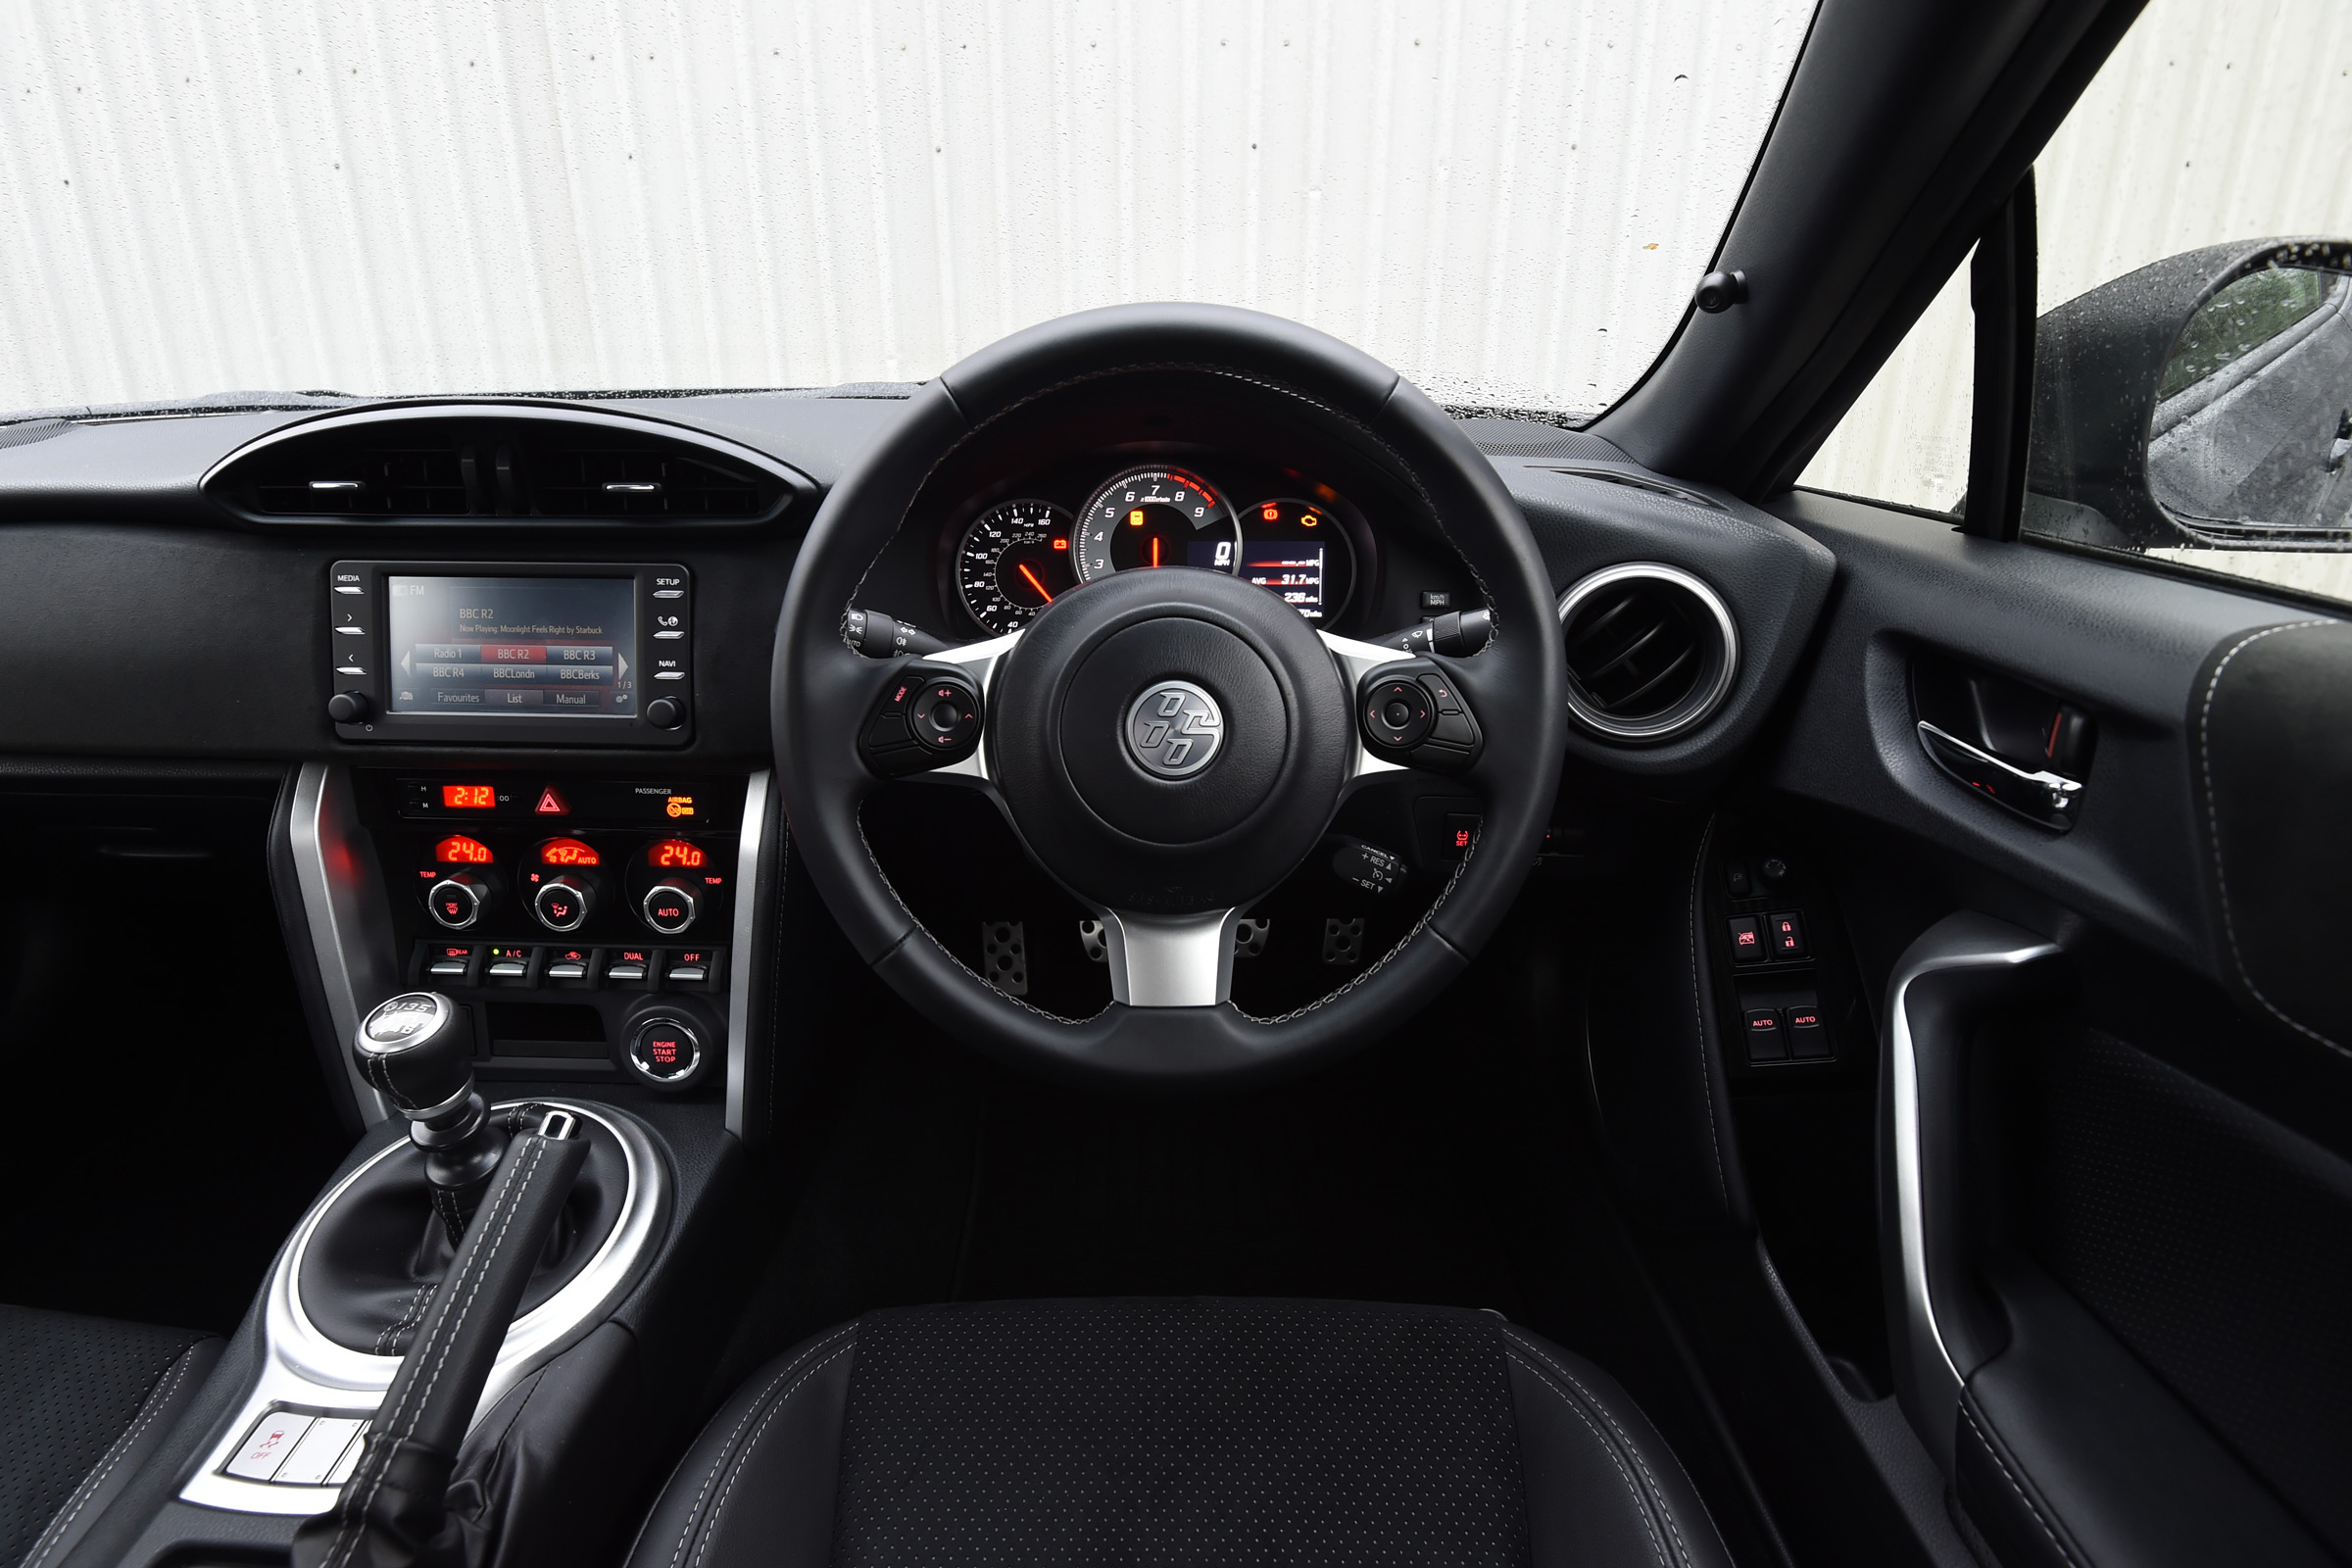 2017 Toyota GT86 Interior Driver Cockpit Steering And Dash (View 4 of 13)